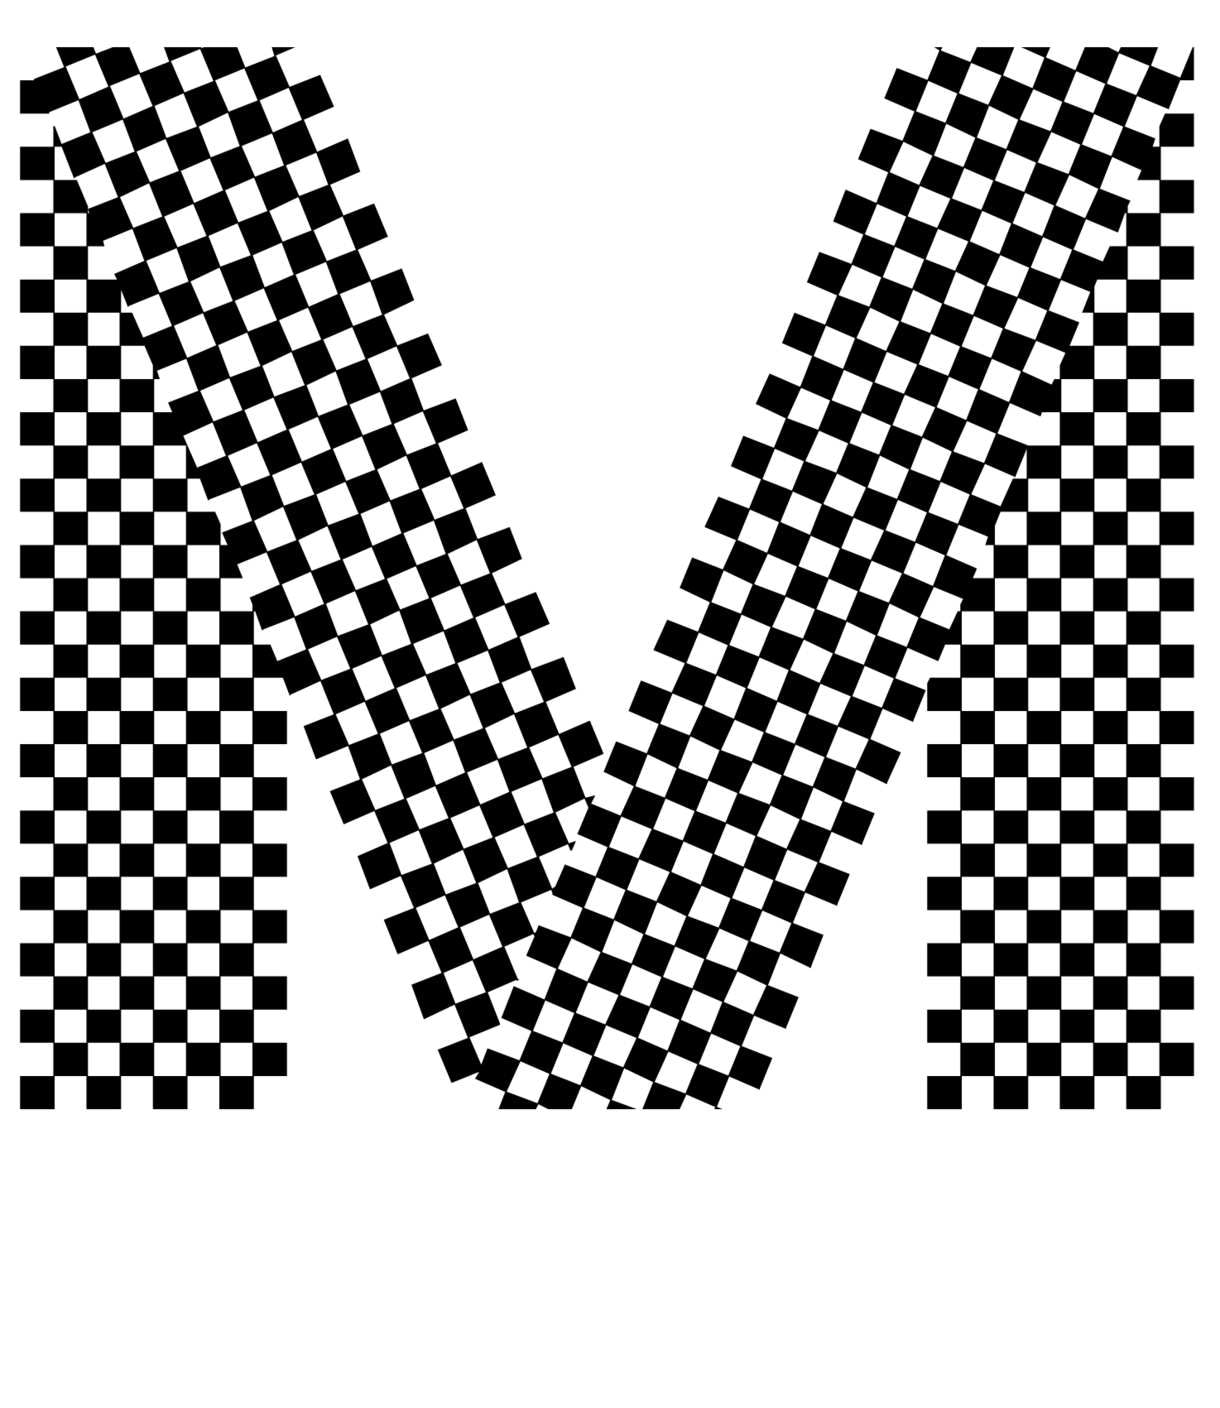 pattern-project-letters-12-1220x1407px